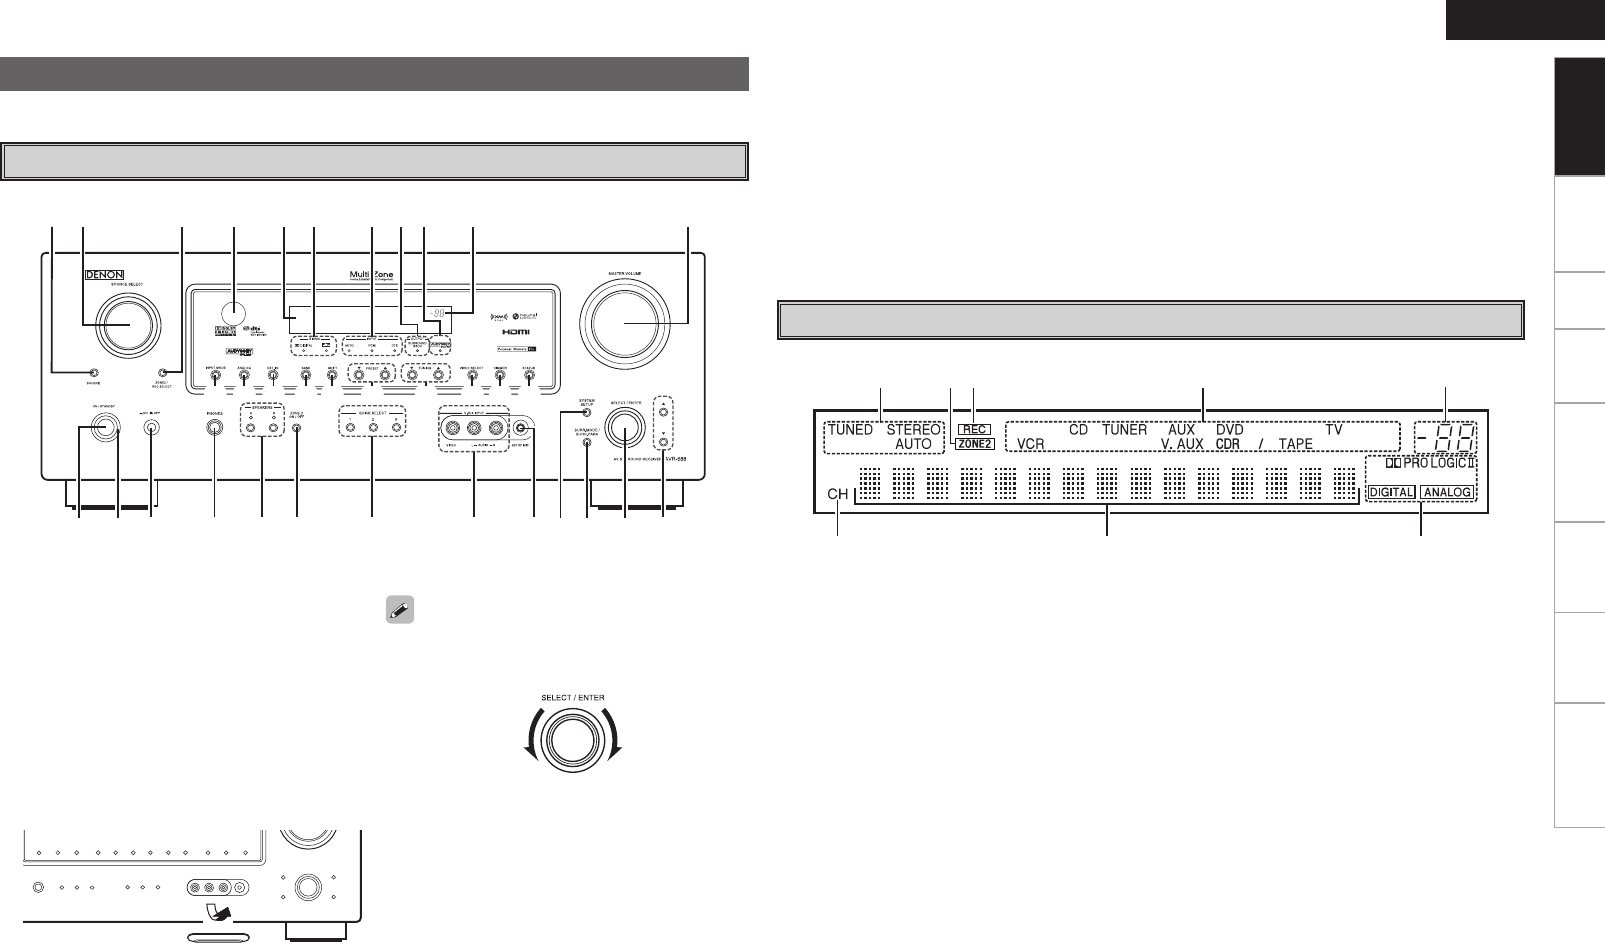 Page 7 of Denon Stereo Receiver AVR-688 User Guide